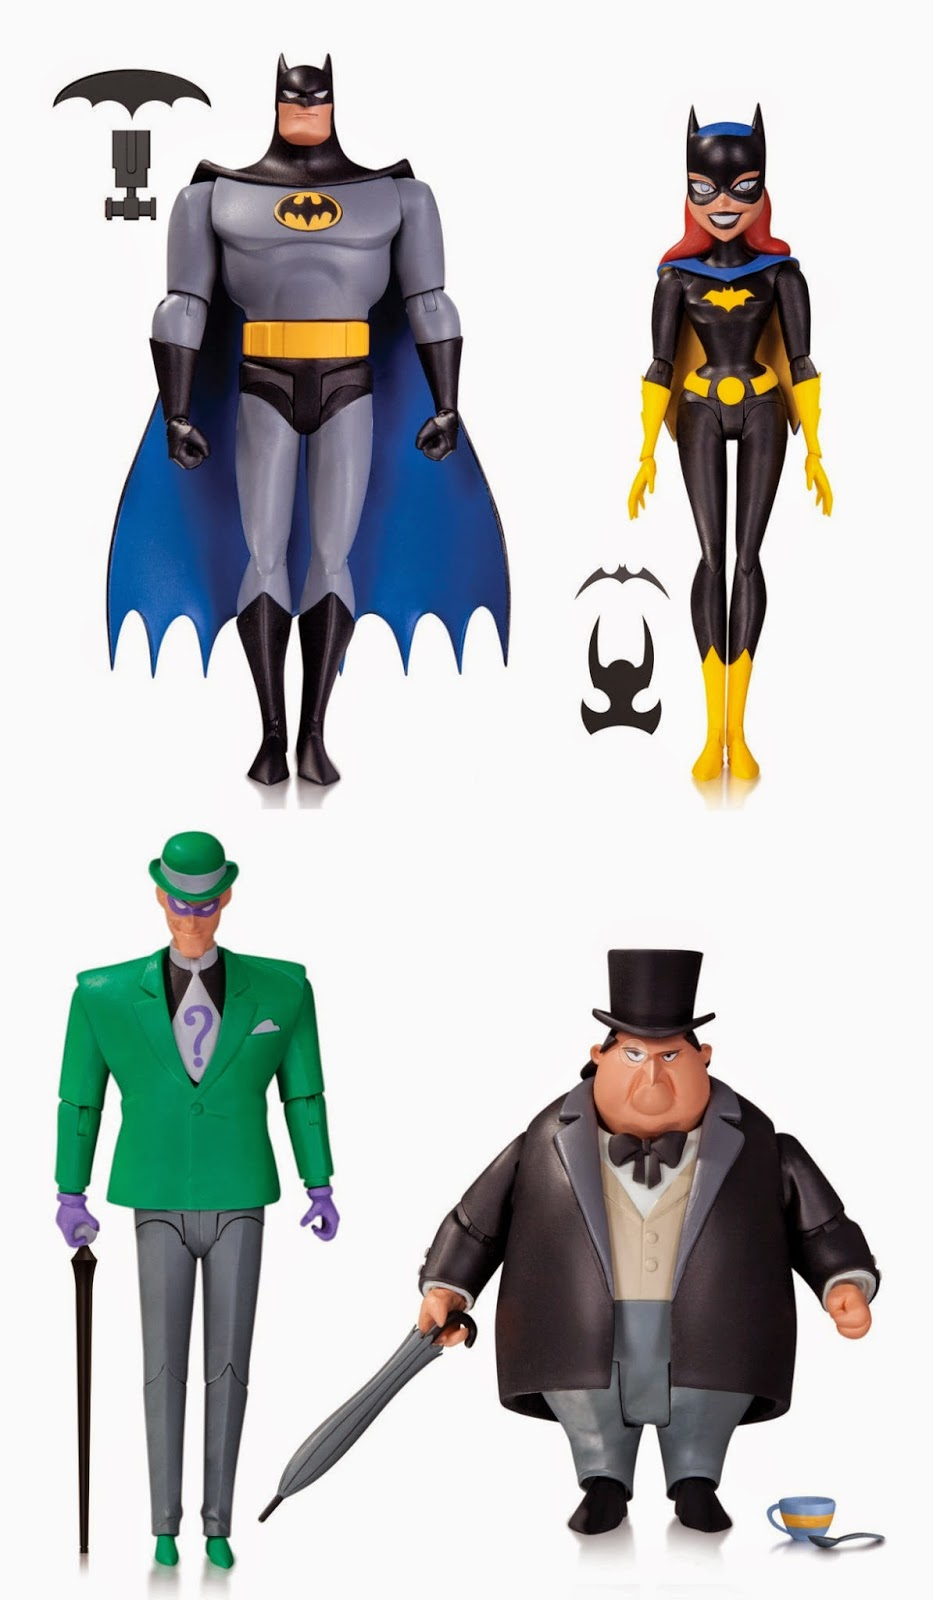 Awesome Animated Series Batman The Animated Series